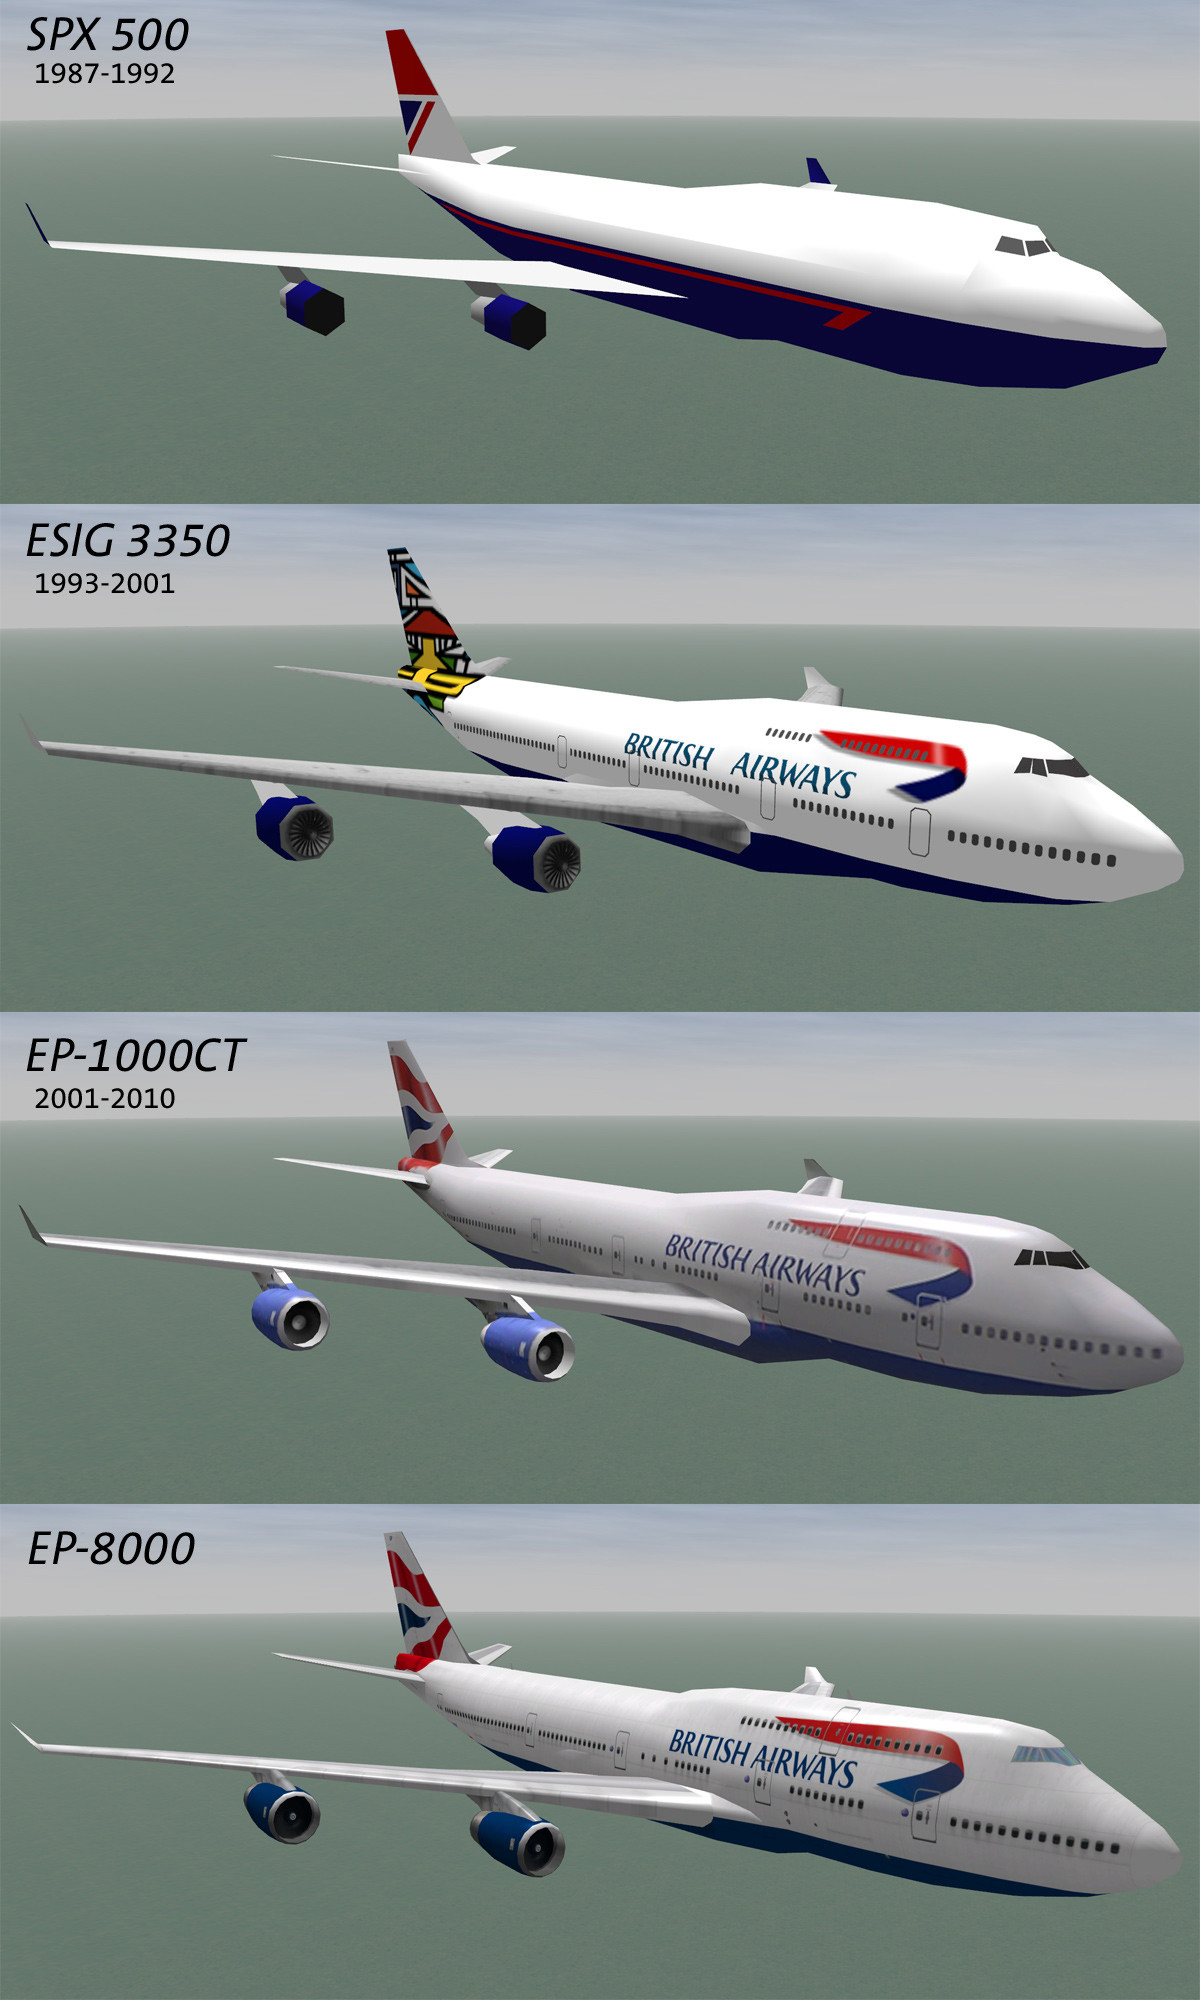 The evolution of one realtime model from 1987 to 2011. The geo and textures were rebuilt each time for each new version of the simulation hardware and software.